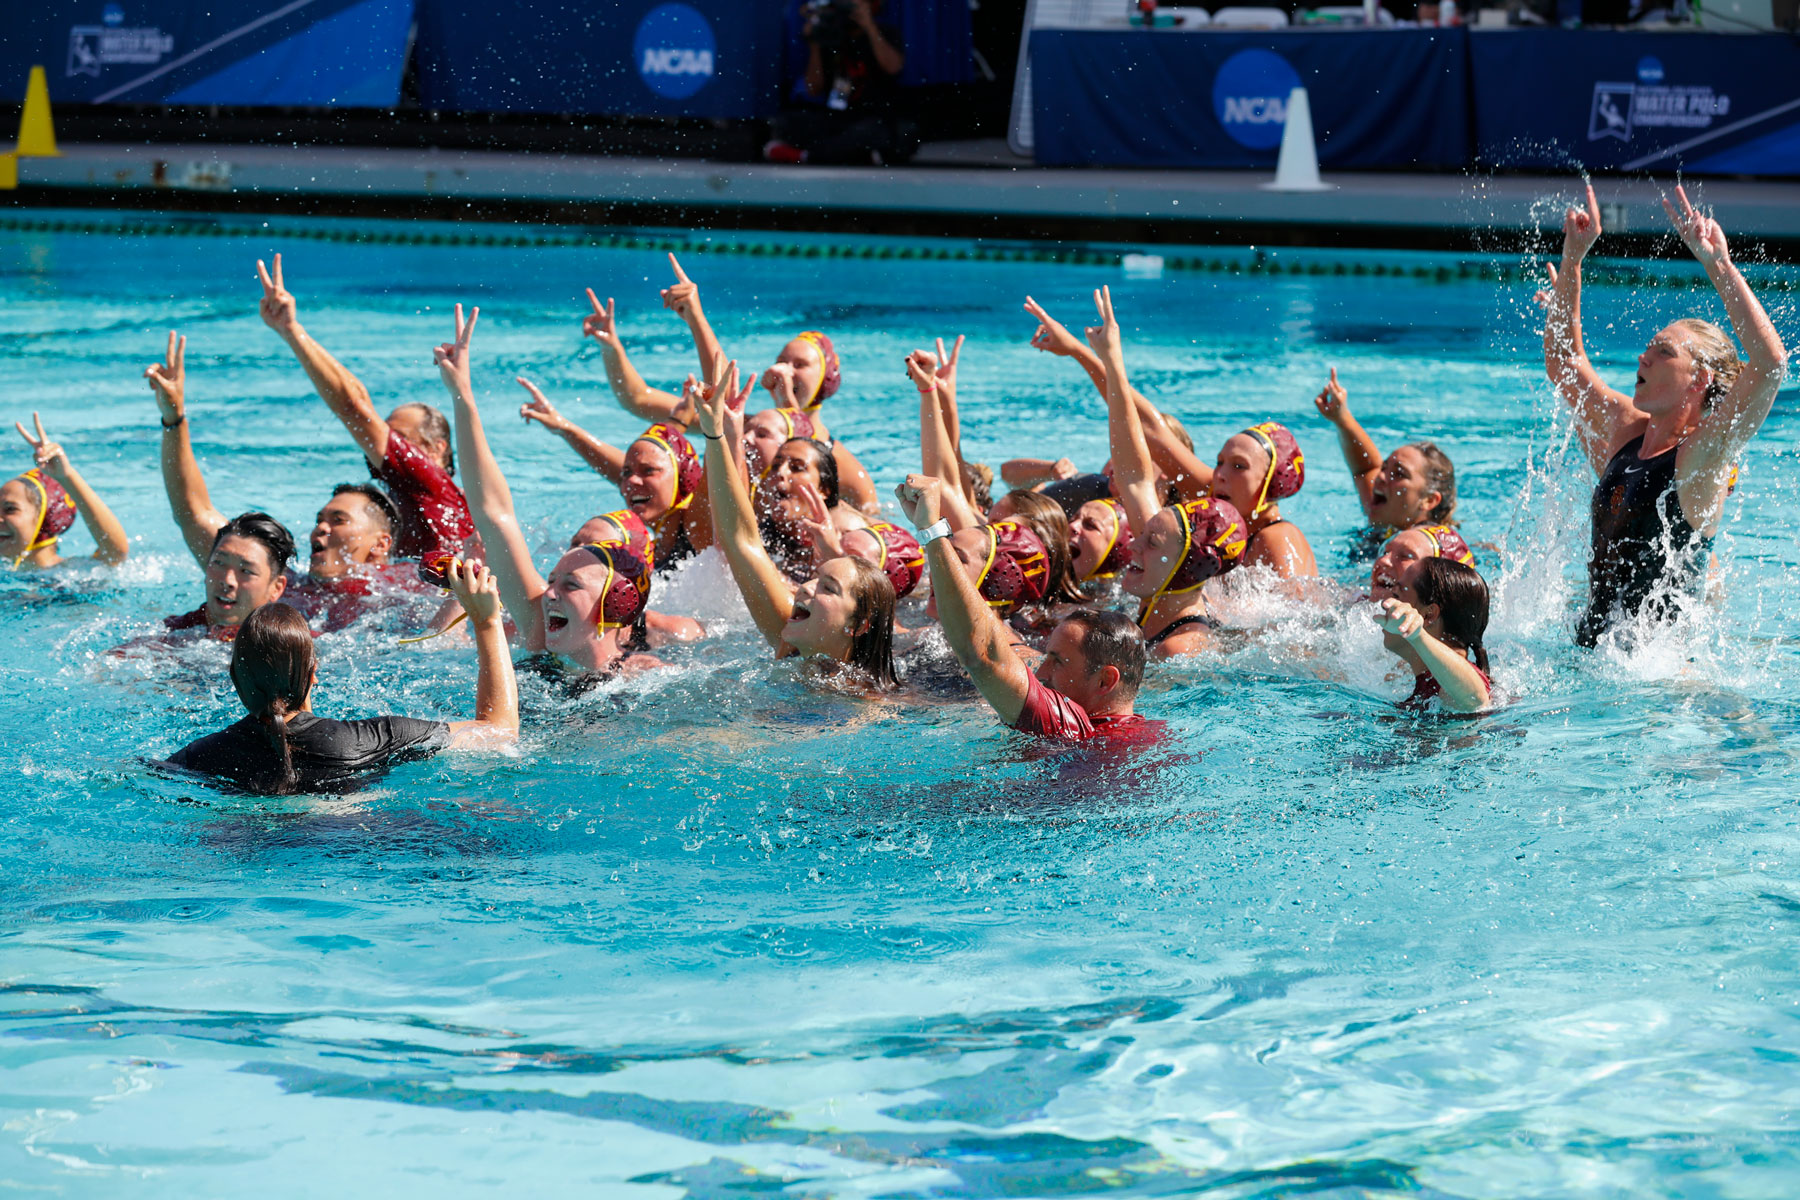 USC sports highlights 2018: women's water polo